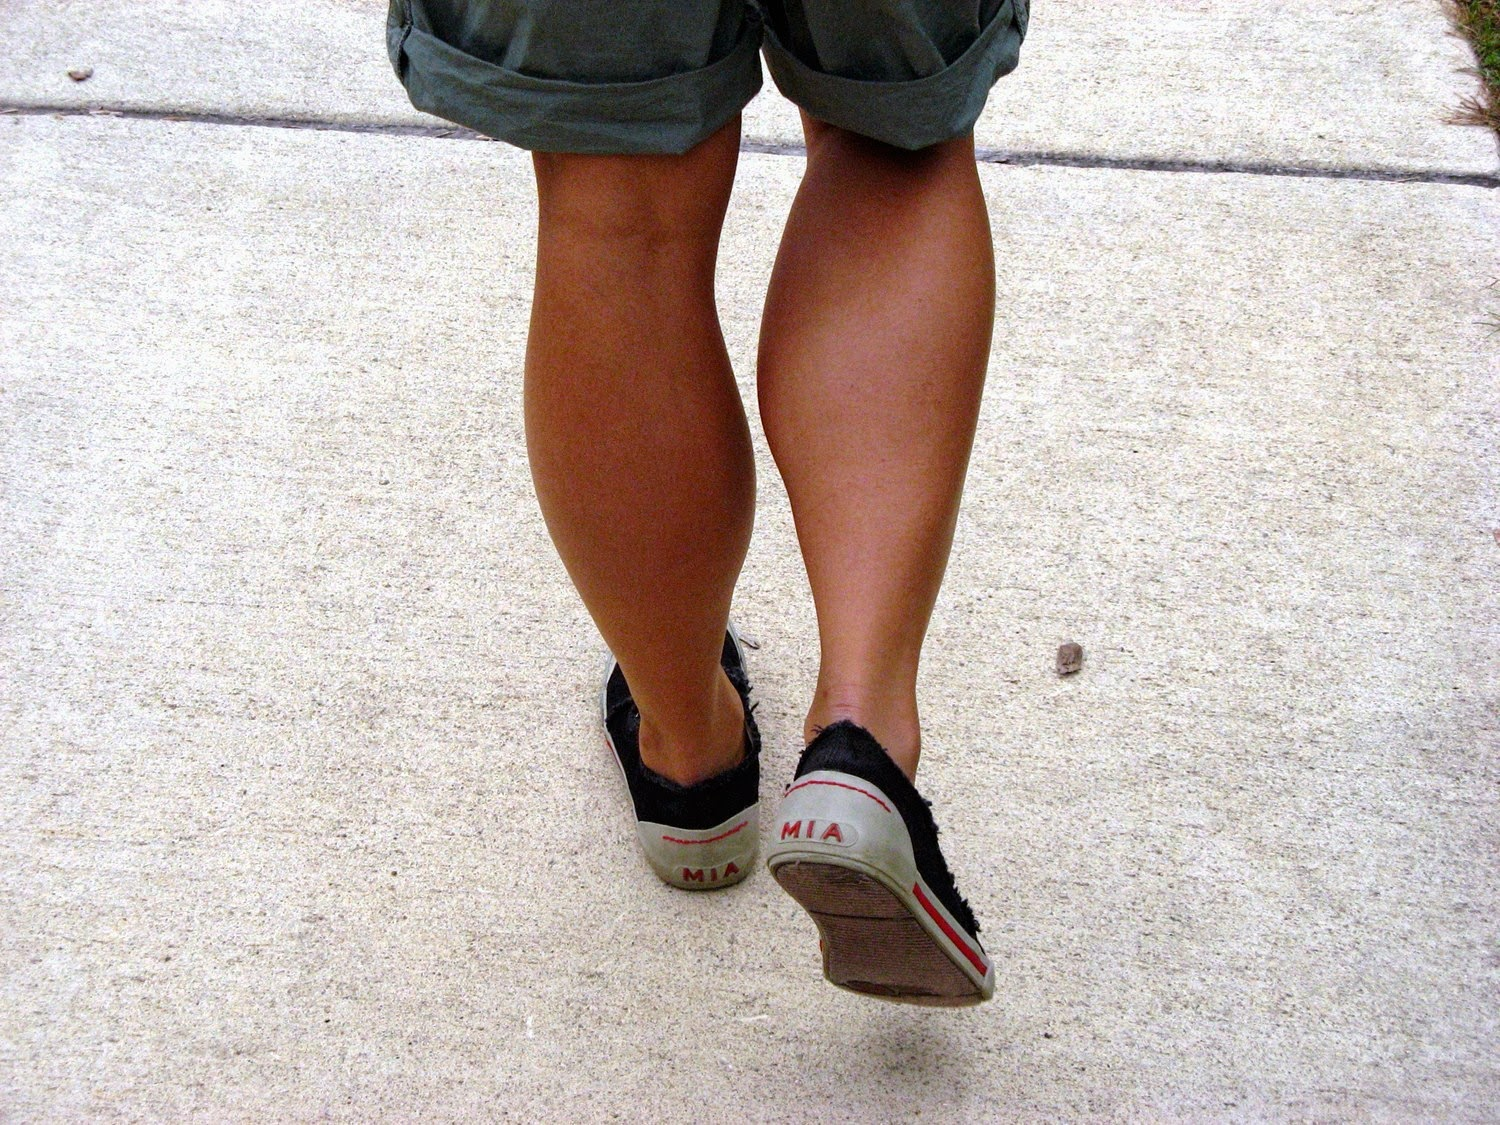 Her Calves Muscle Legs Woman With Large Calves - Set 1